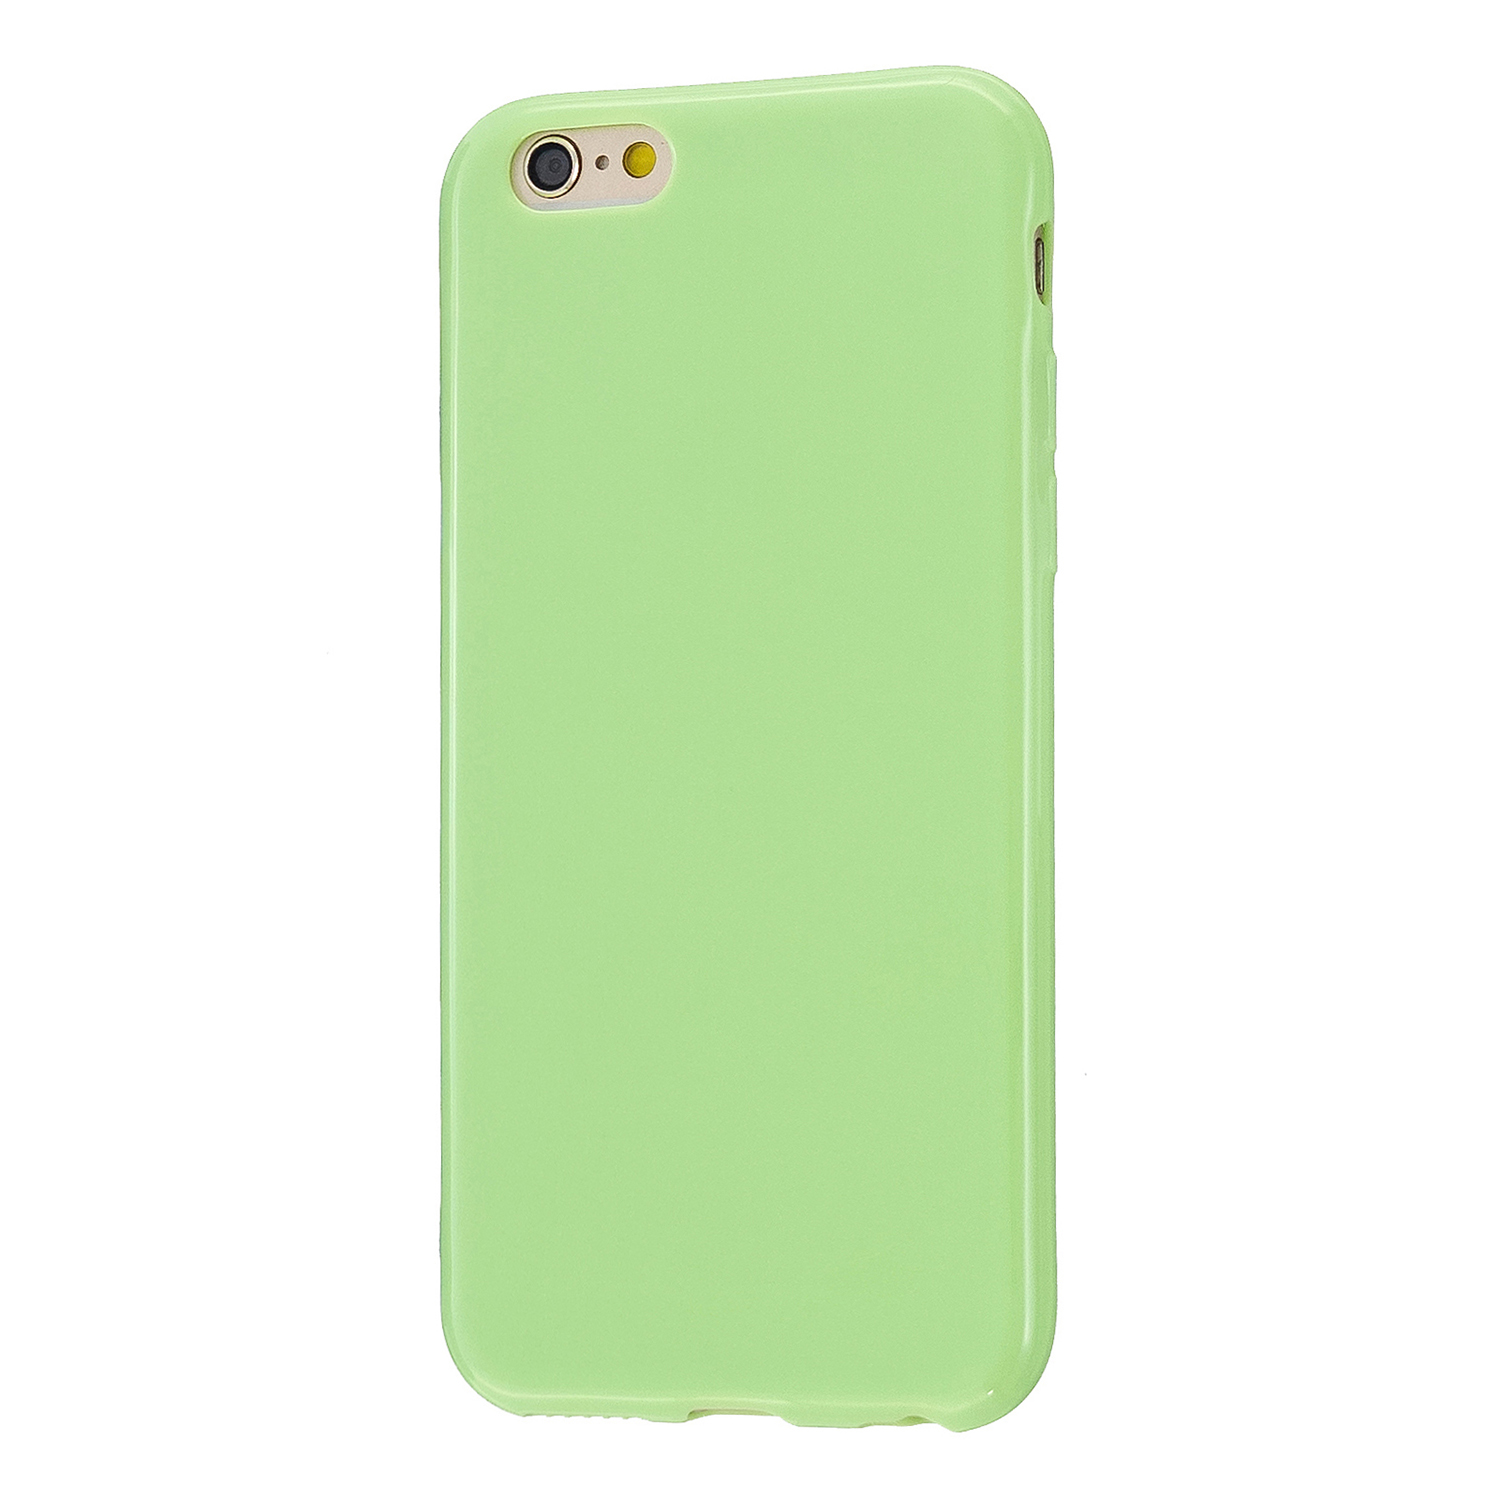 For iPhone 5/5S/SE/6/6S/6 Plus/6S Plus/7/8/7 Plus/8 Plus Cellphone Cover Soft TPU Bumper Protector Phone Shell Fluorescent green